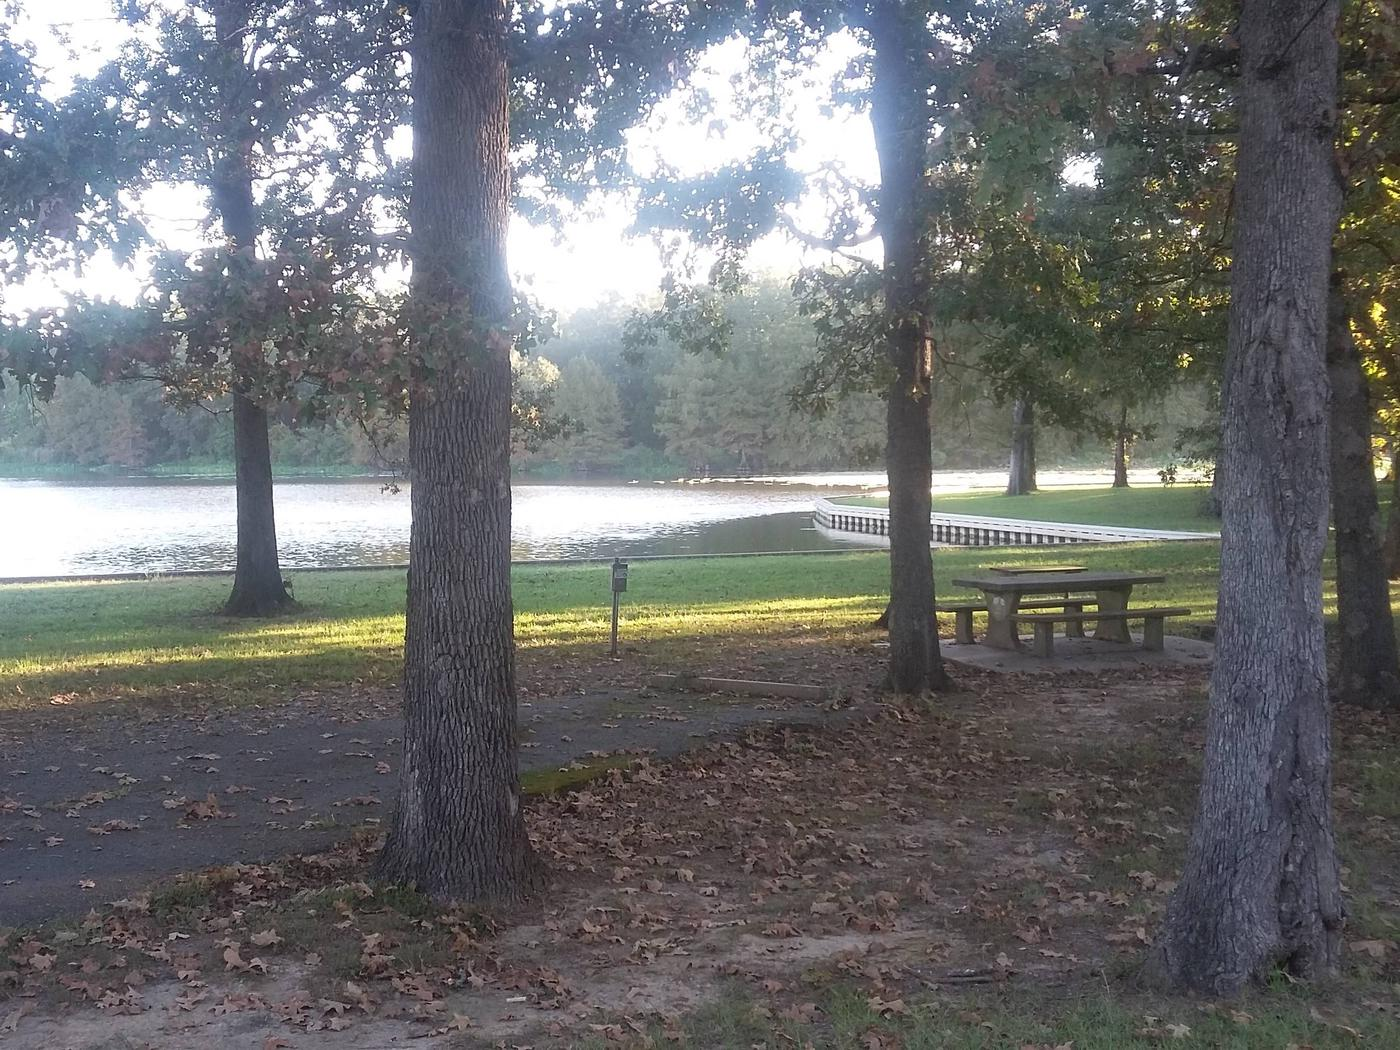 100 Yards to Shower/Restroom. 100 yards to Merrisach Lake AccessA-8